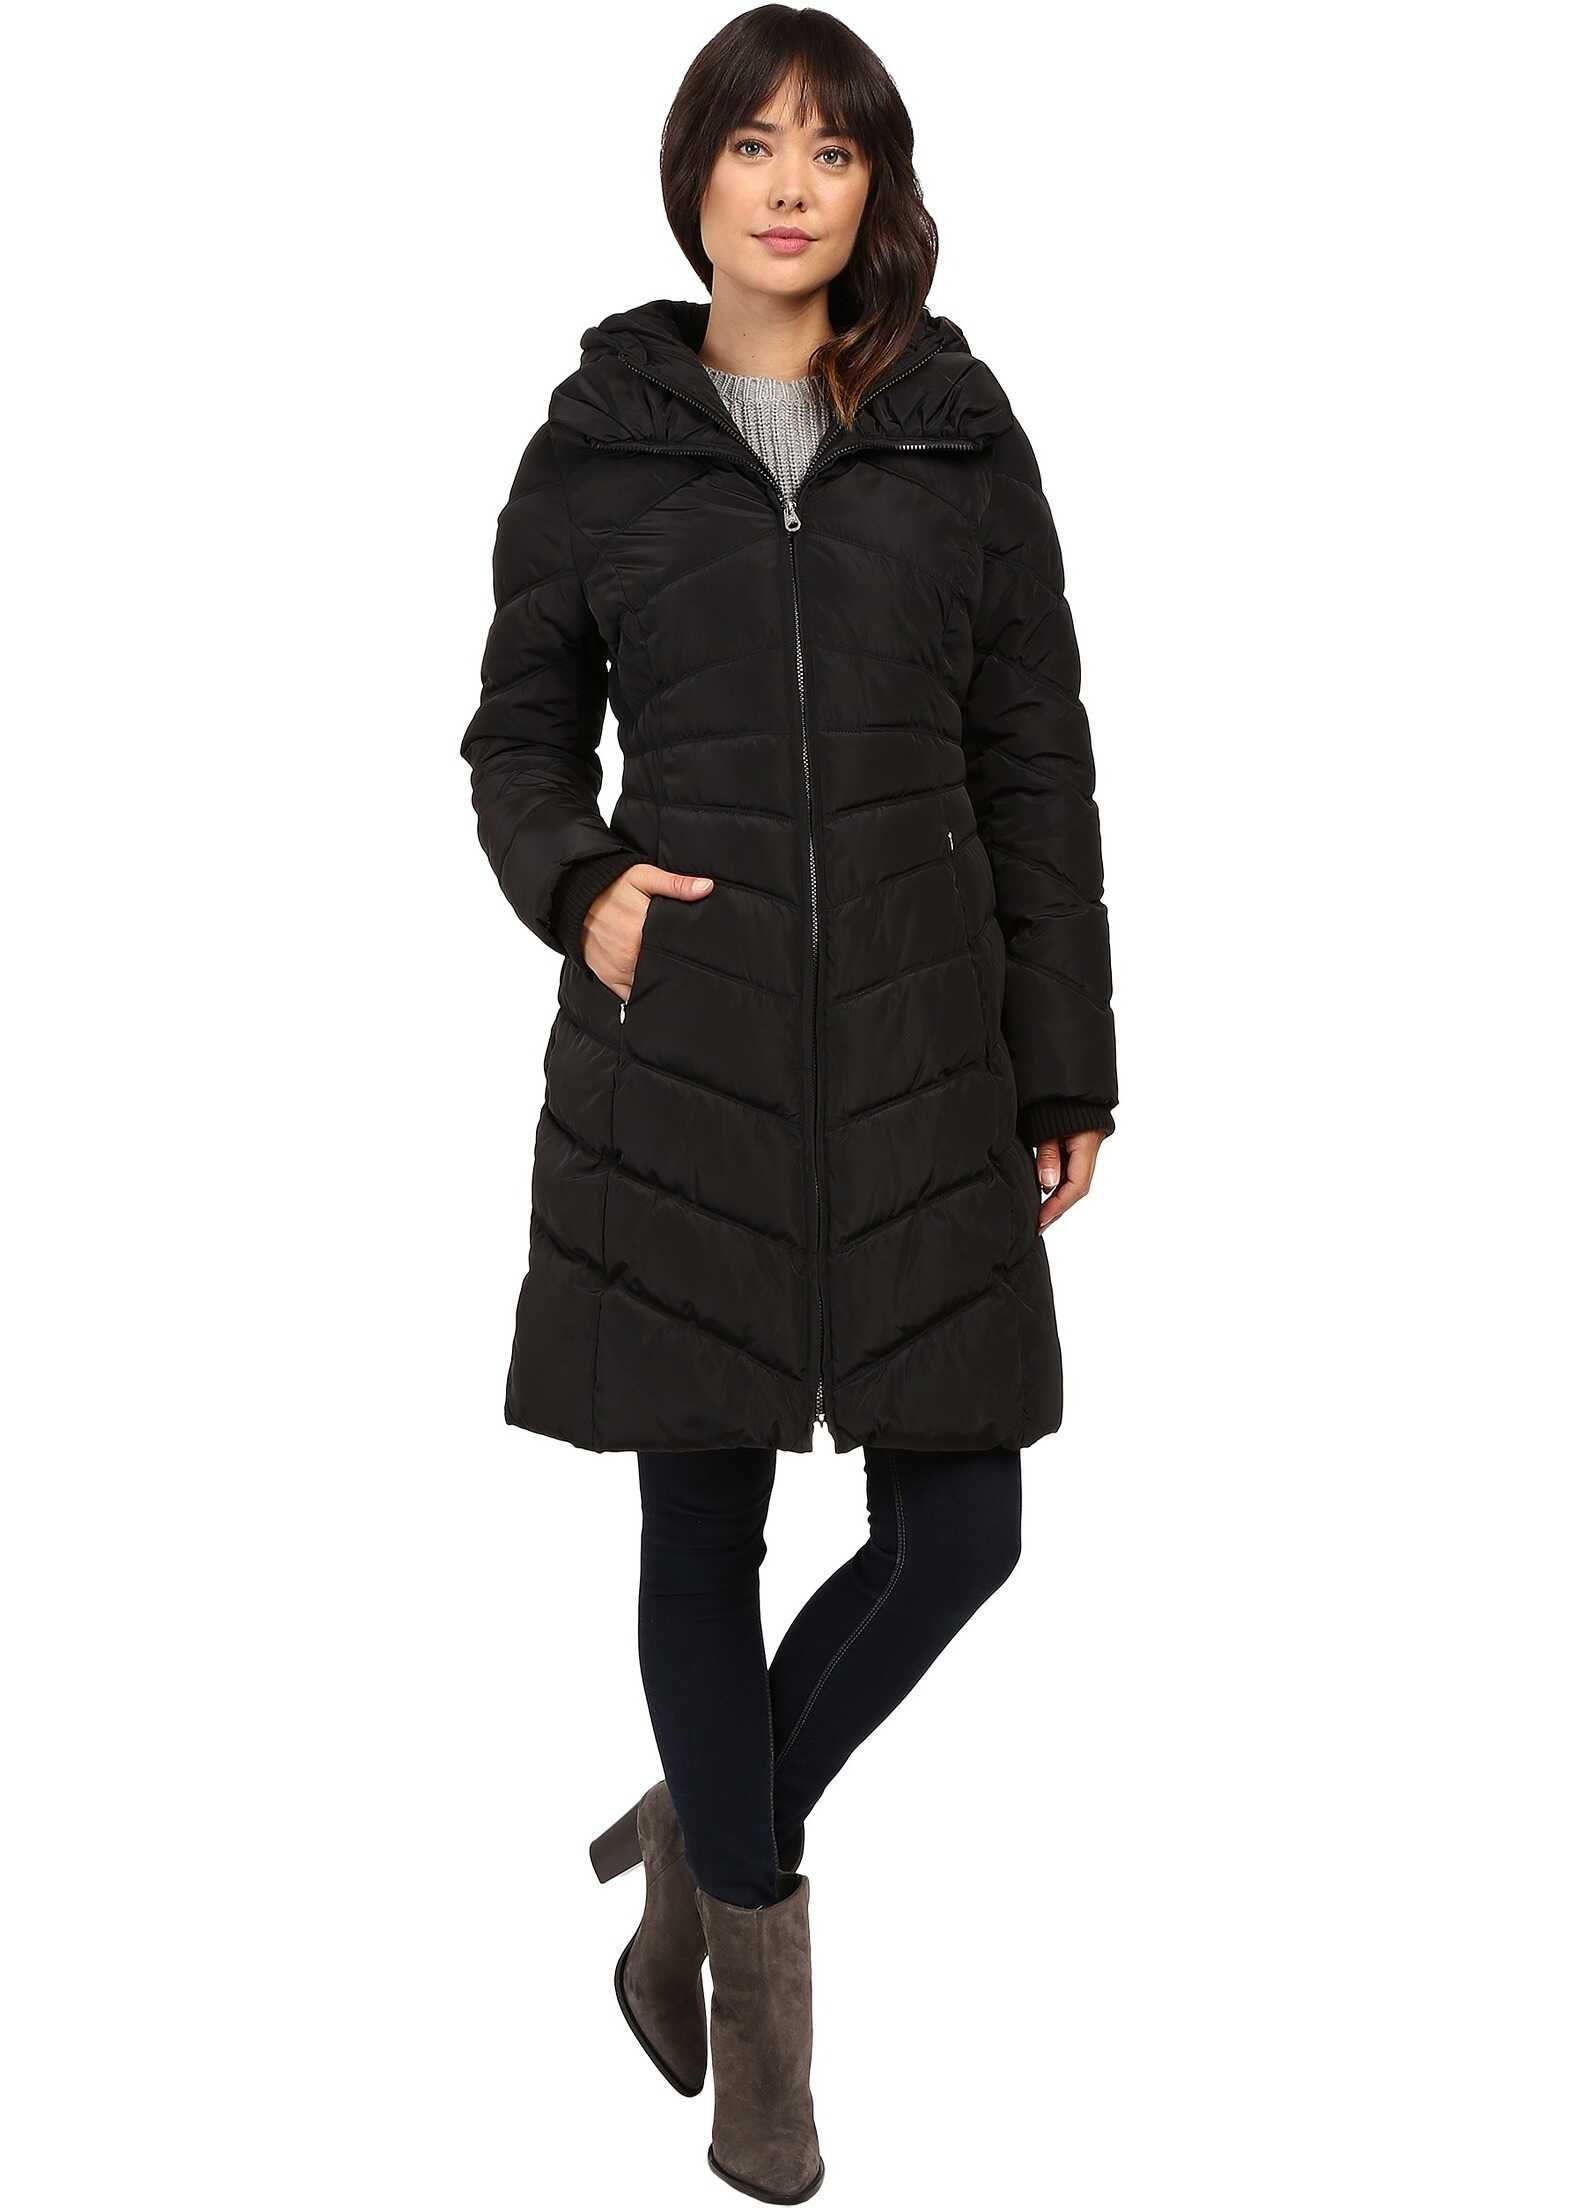 Jessica Simpson Chevron Quilted Down with Hood Black